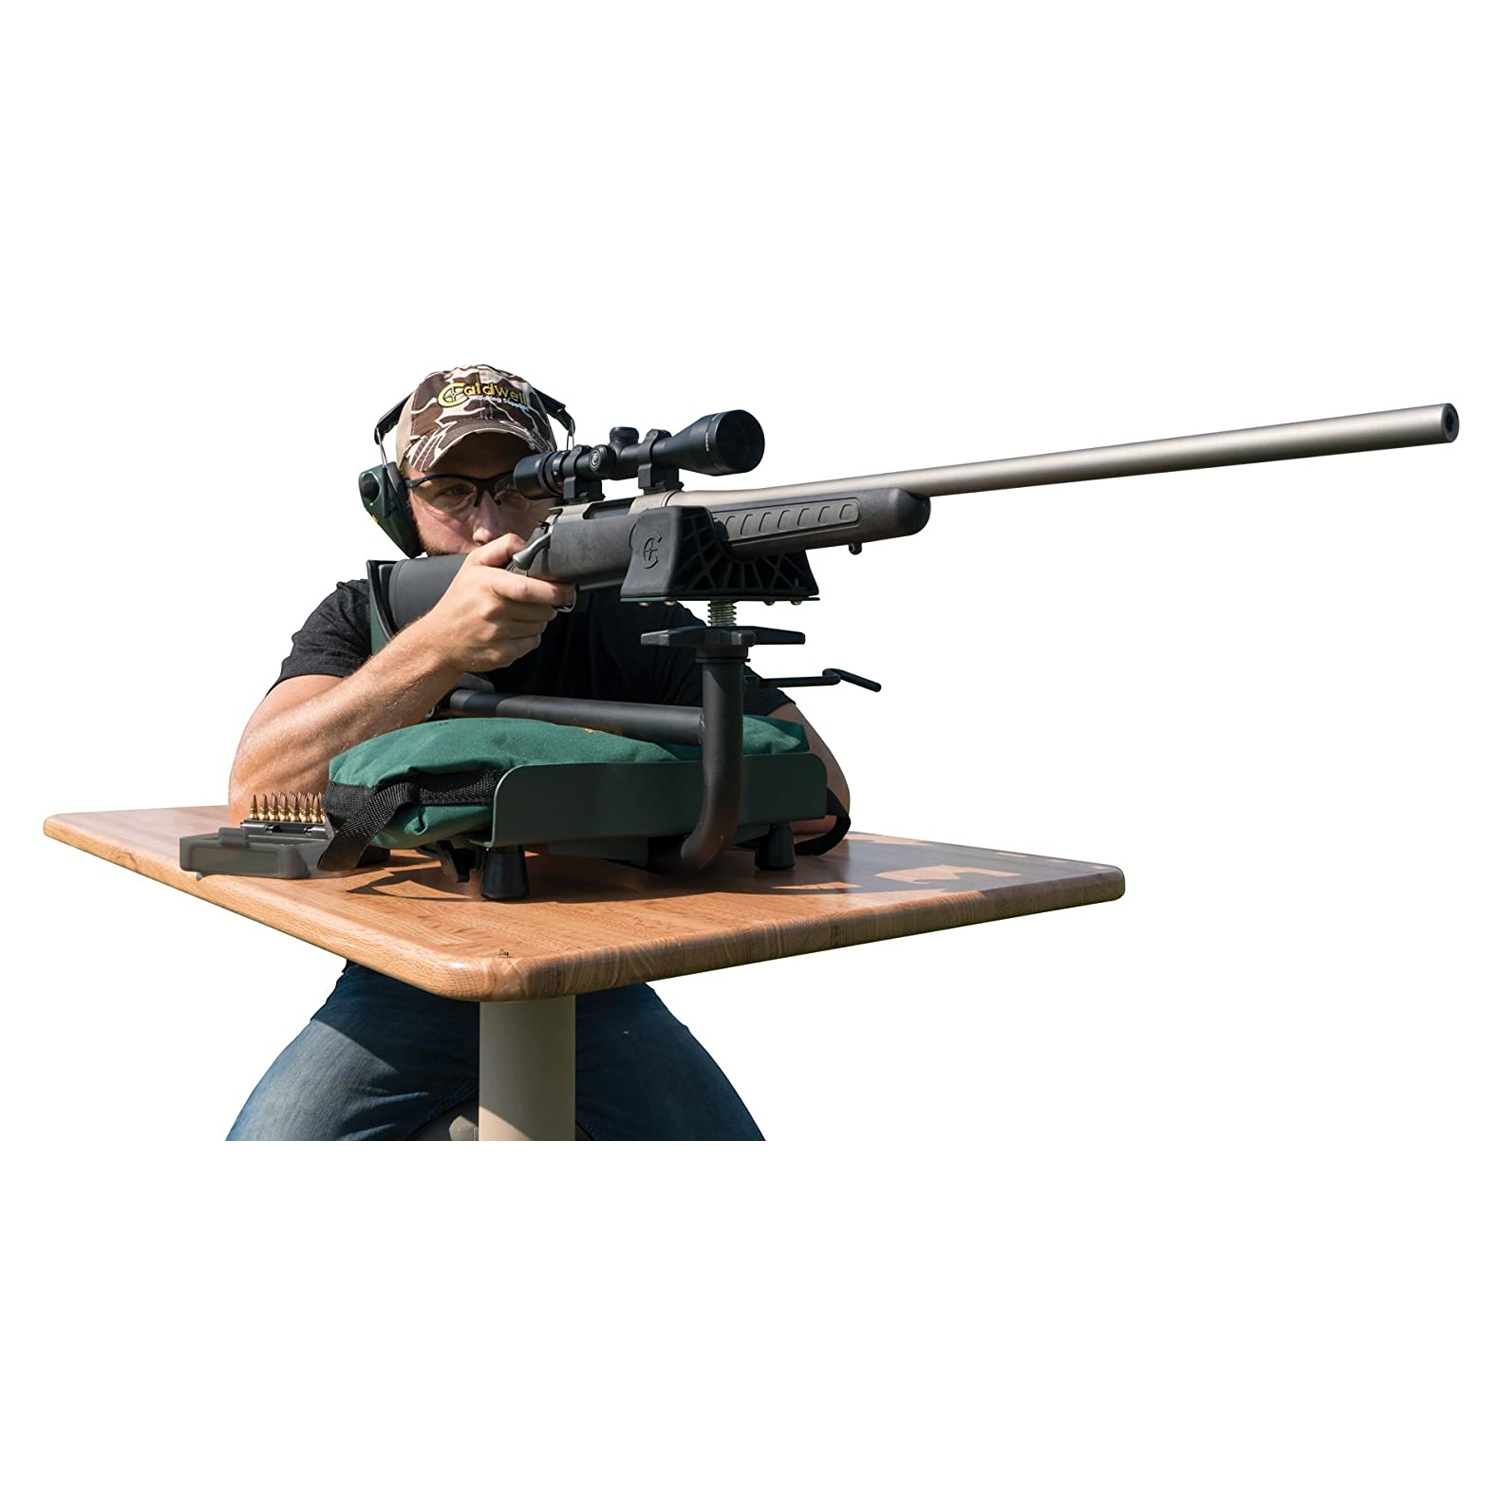 New Lead Sled 3 Adjustable Ambidextrous Recoil Reducing Rifle Shooting Rest for Outdoor Range